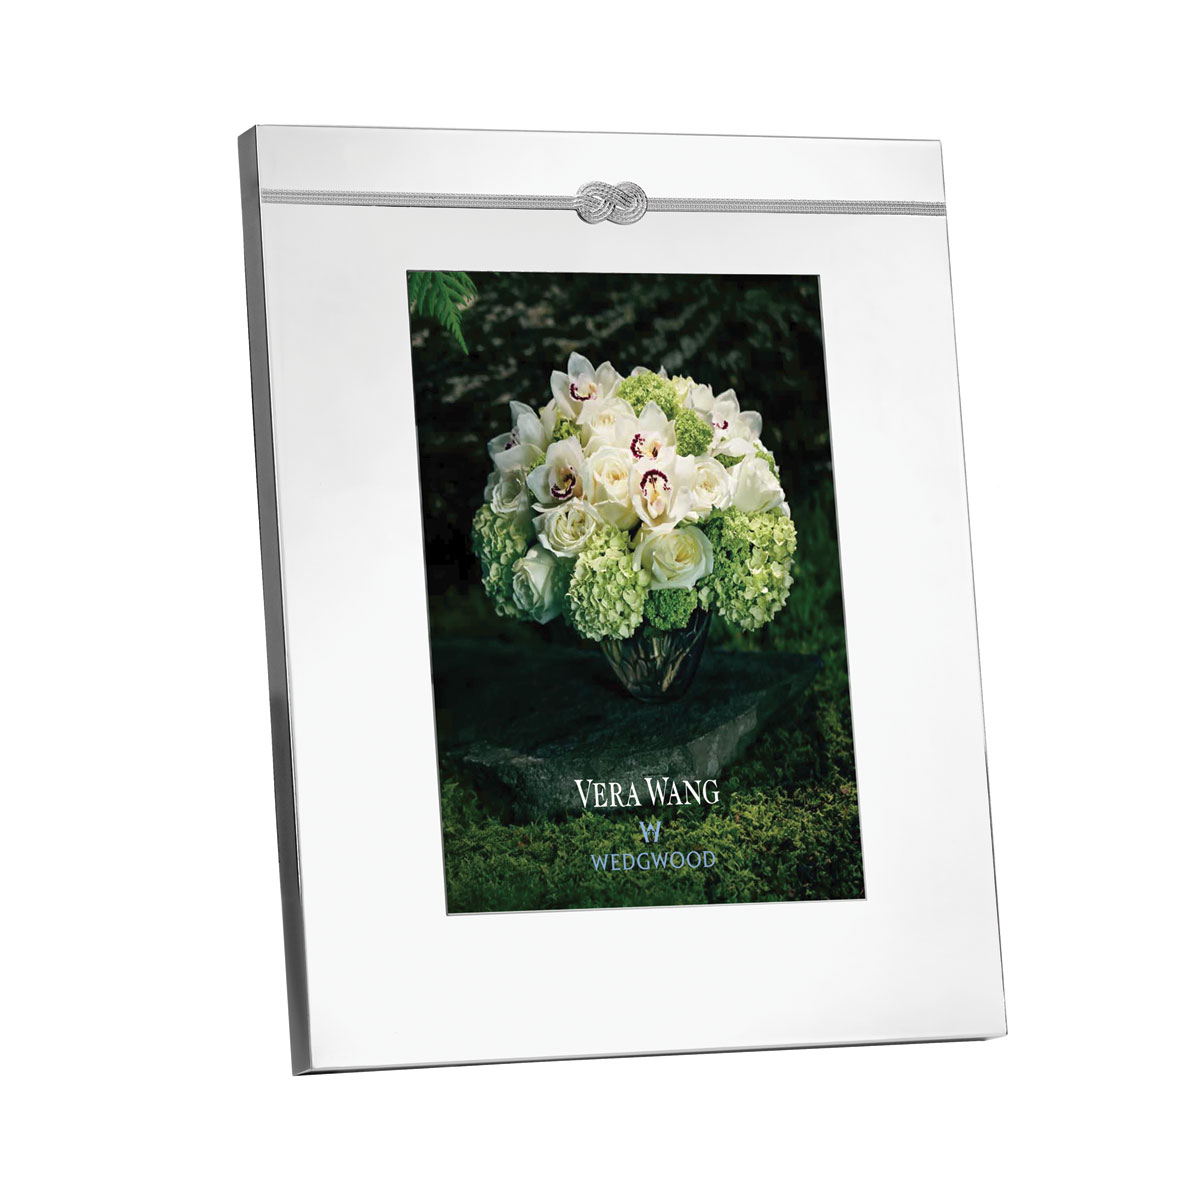 "Vera Wang Wedgwood Infinity 8x10"" Picture Frame"